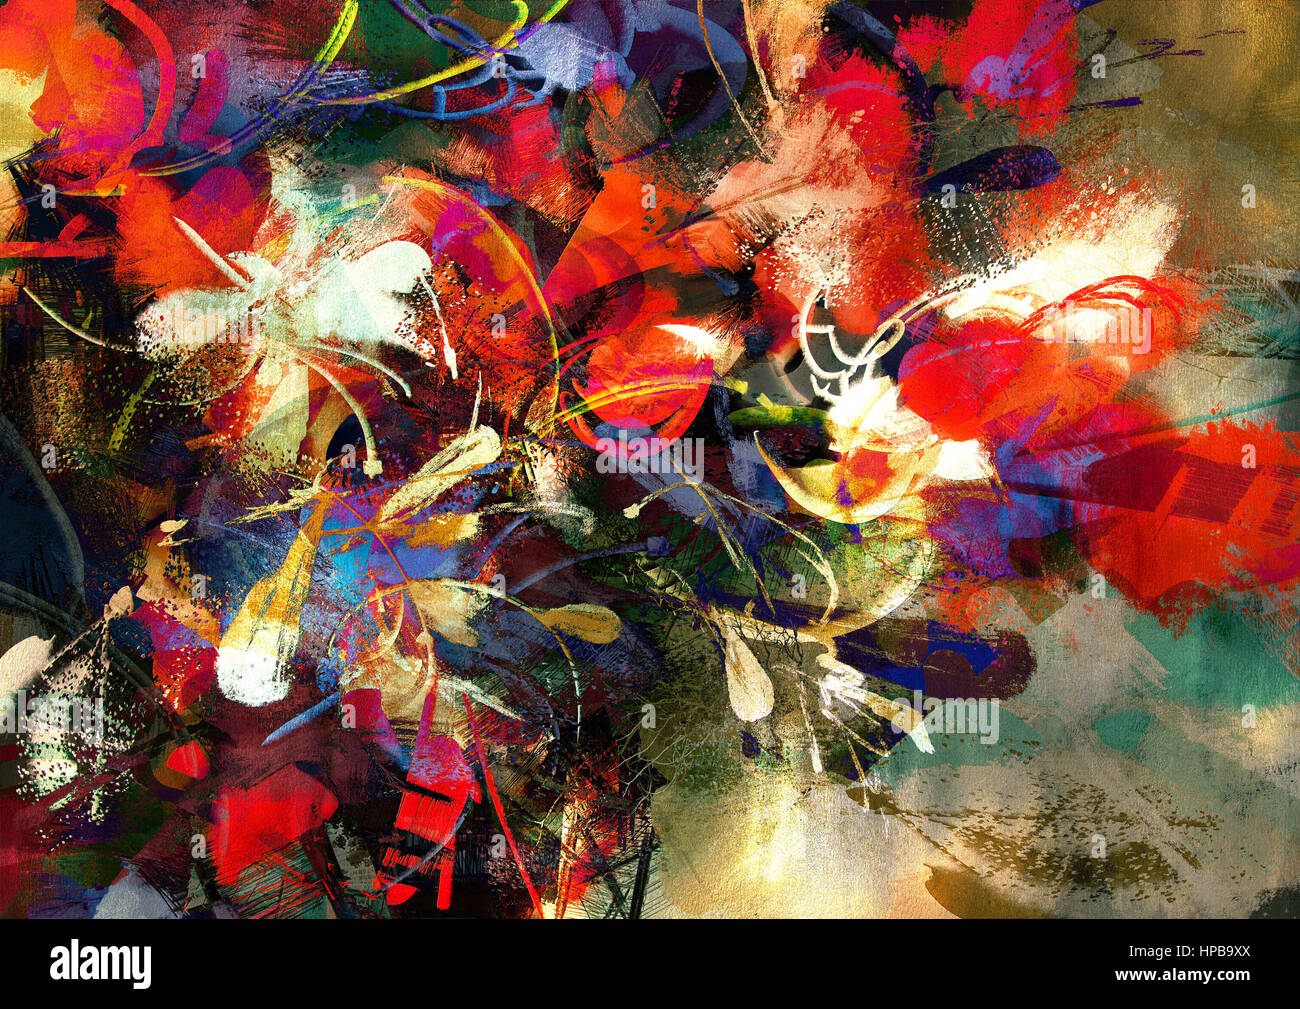 Digital Painting Of Abstract Bright Colorful Flowers